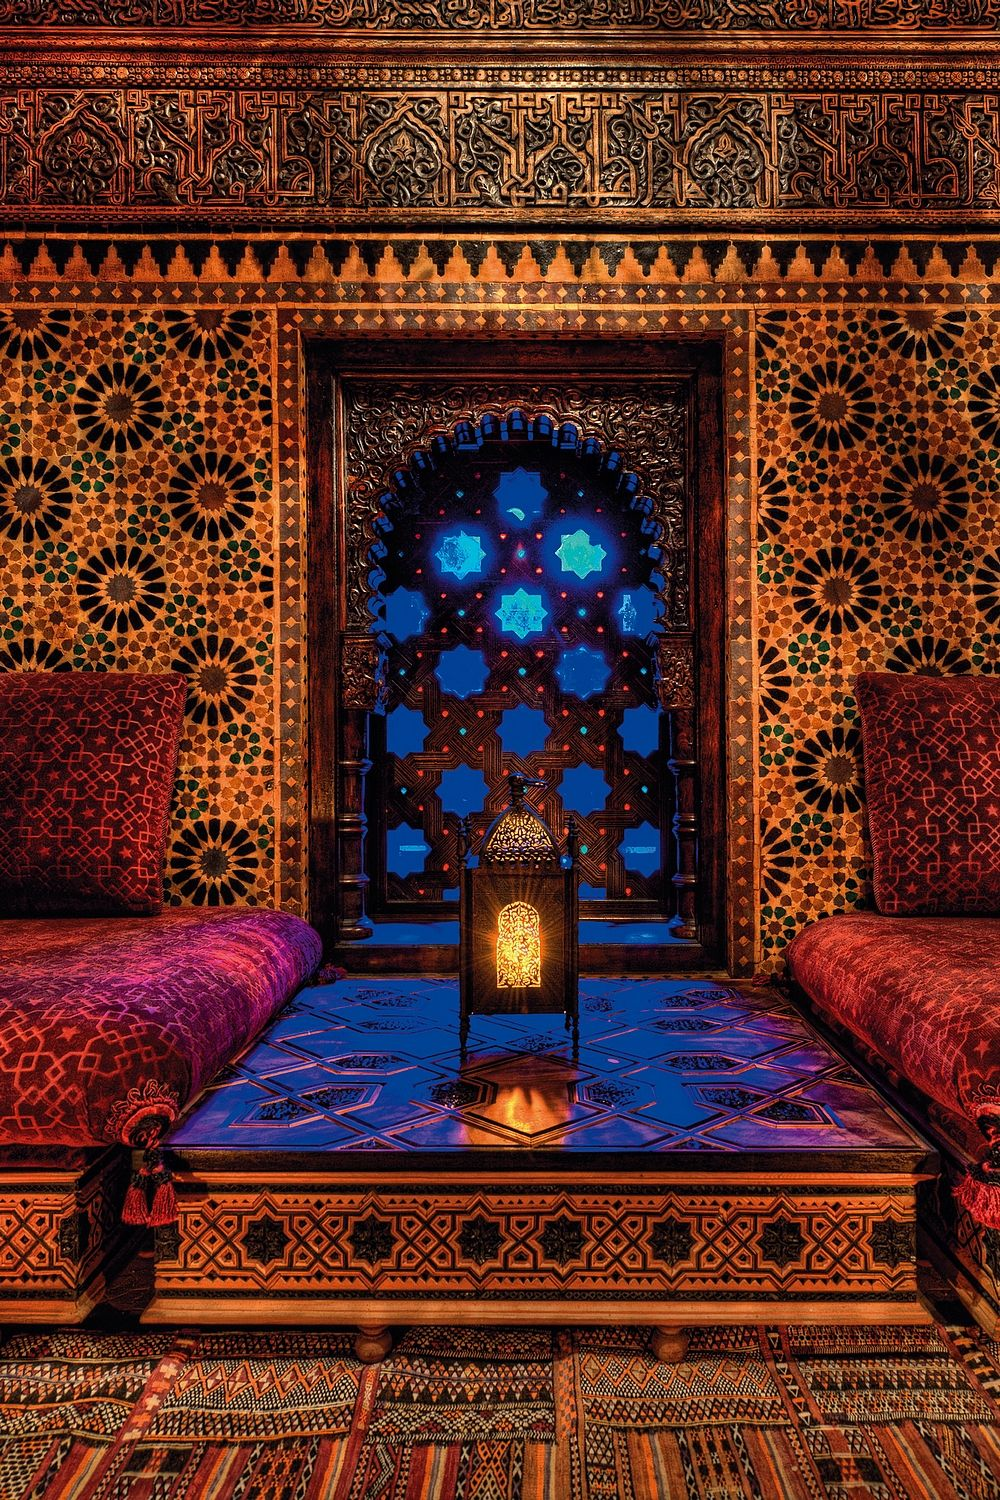 Home Decorating Ideas Moroccan Style Bedroom Home Decorating Ideas: Legendary Perfumer Serge Lutens Luxury Palace In Marrakech